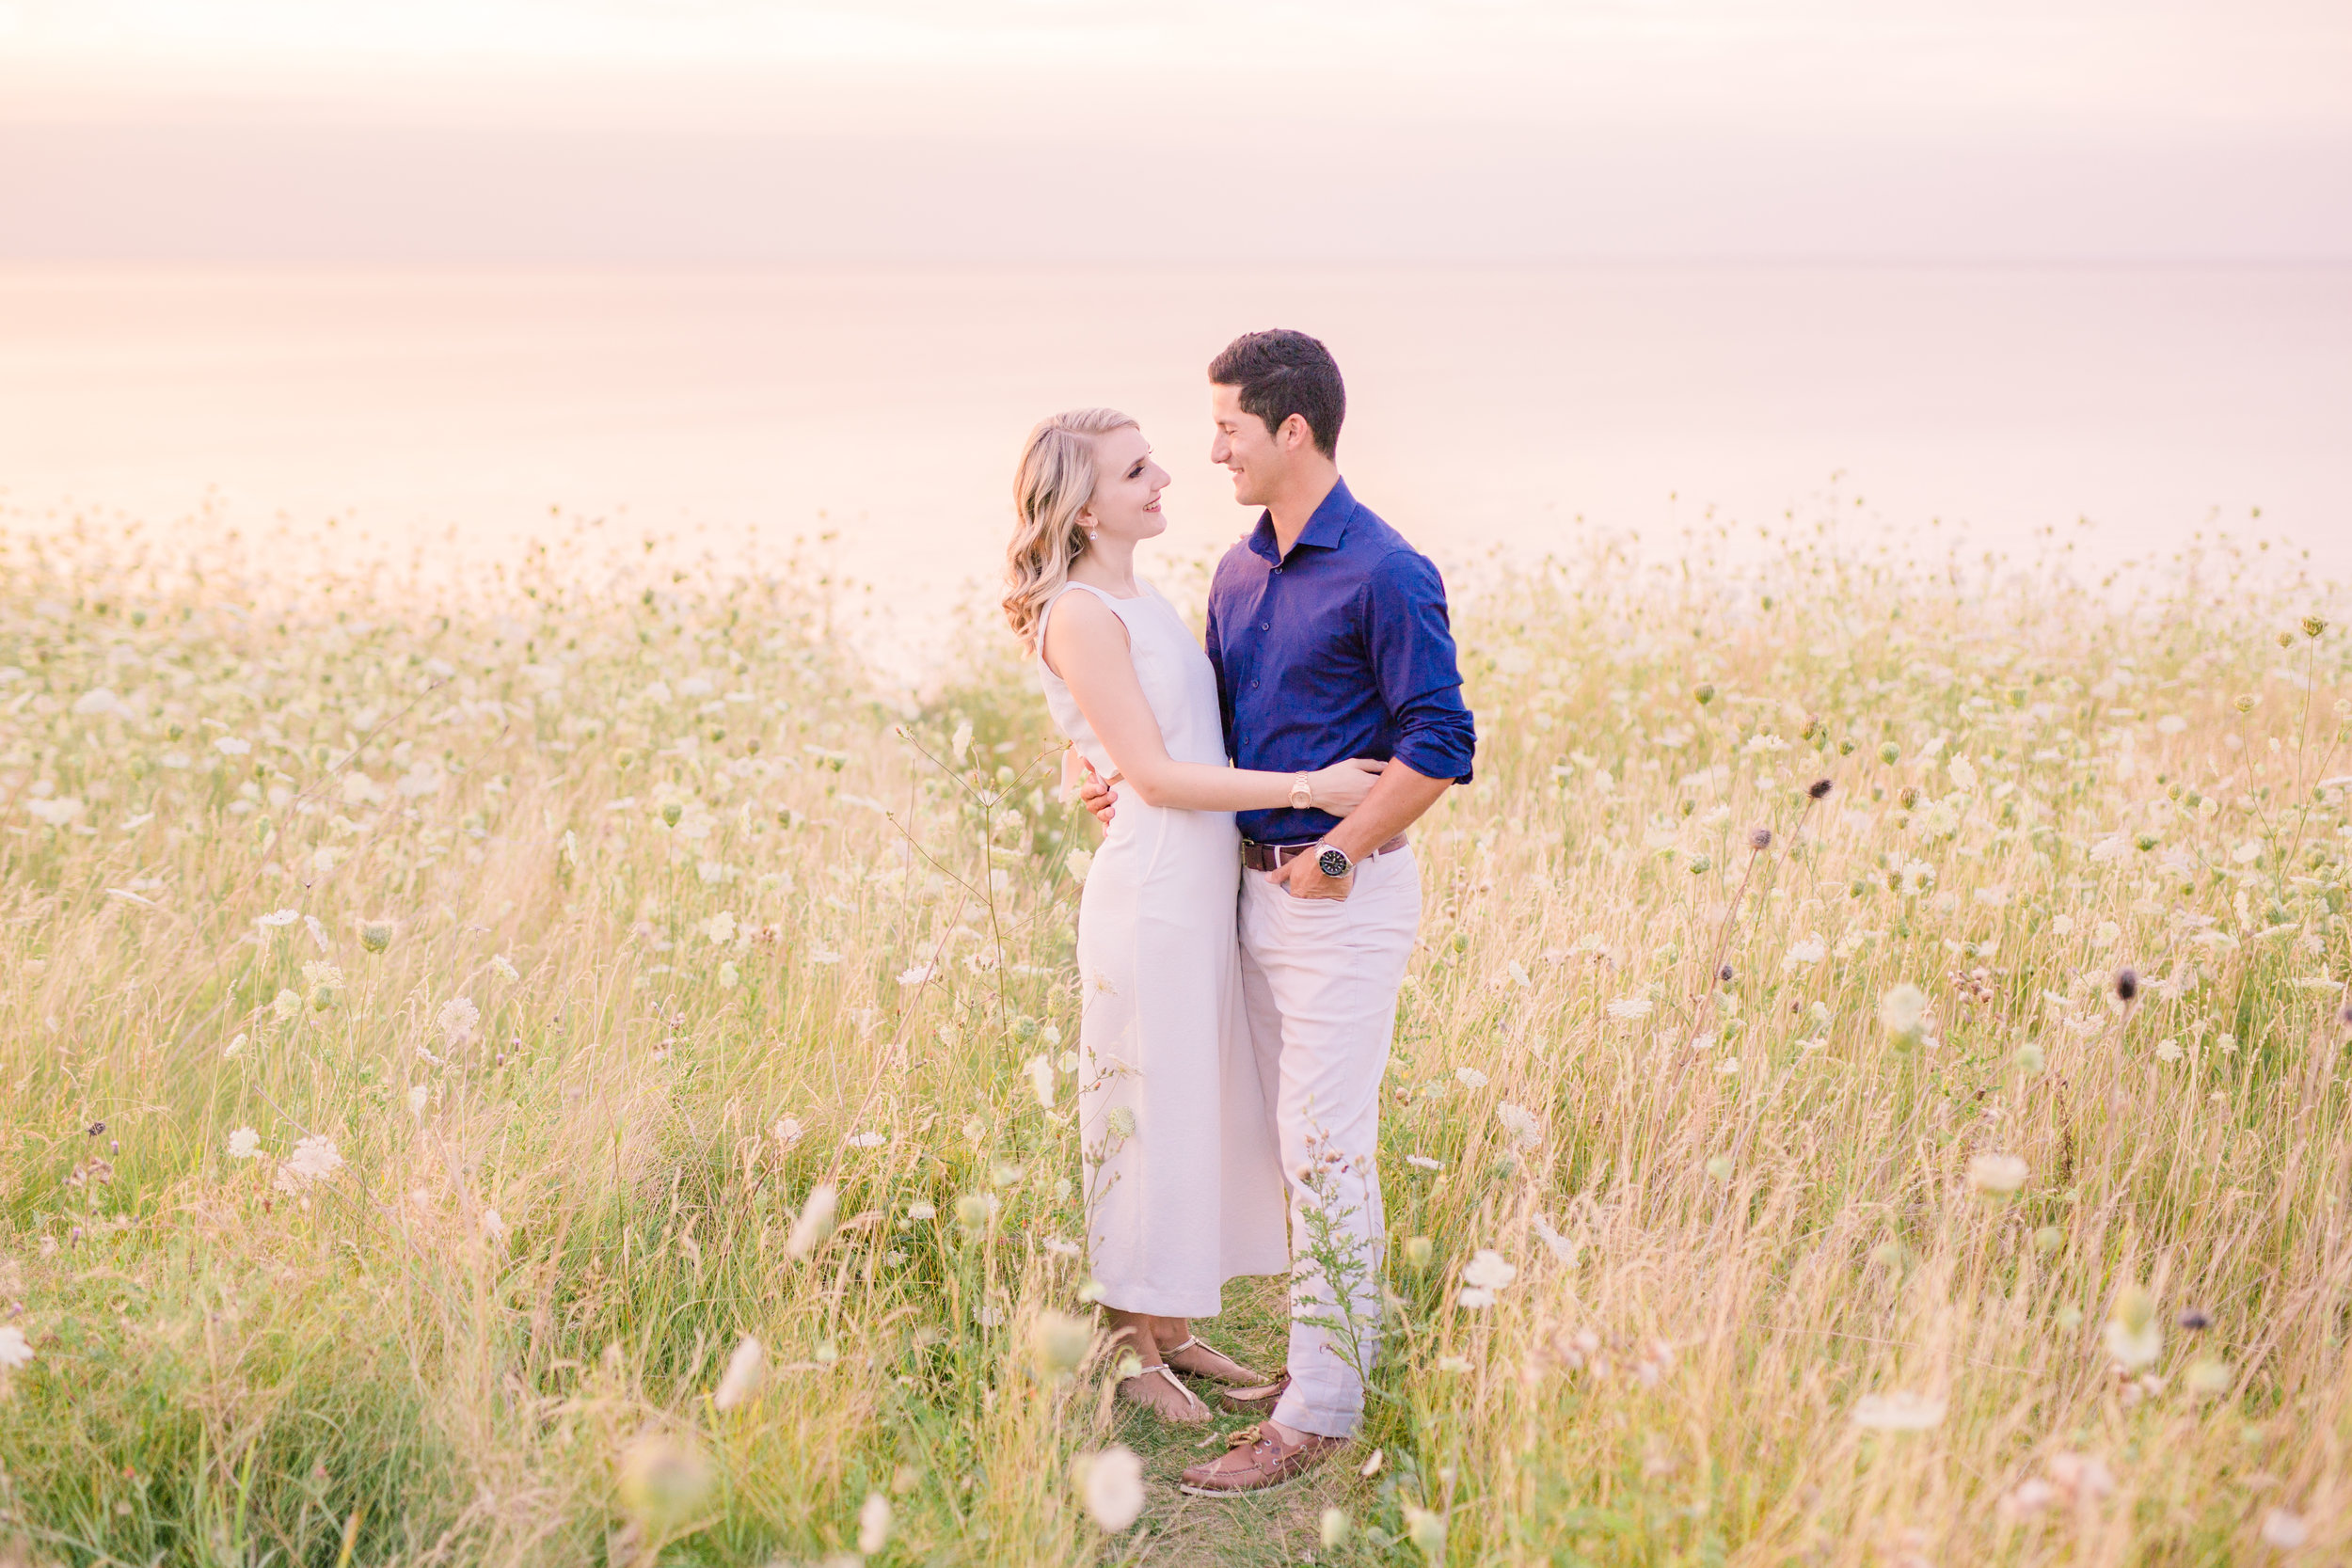 Hilary & Rob Engagement Photography Session-290.jpg